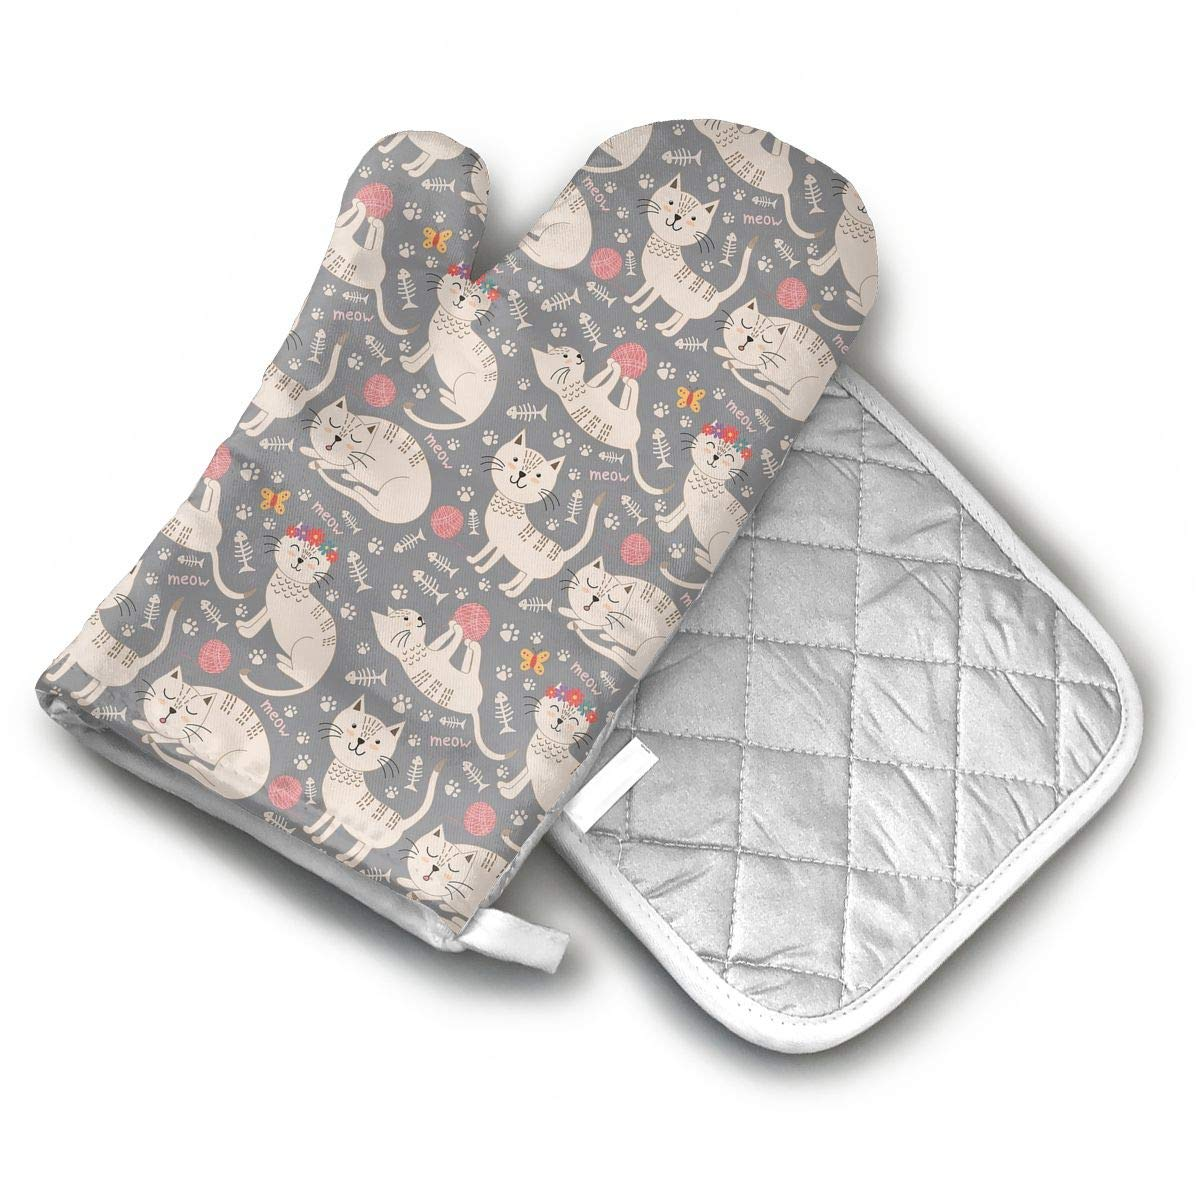 TEDISMC Oven Mitts and Potholder Cute Cat and Wool Heat Resistant Oven Gloves Non-Slip Oven Pad for Cooking